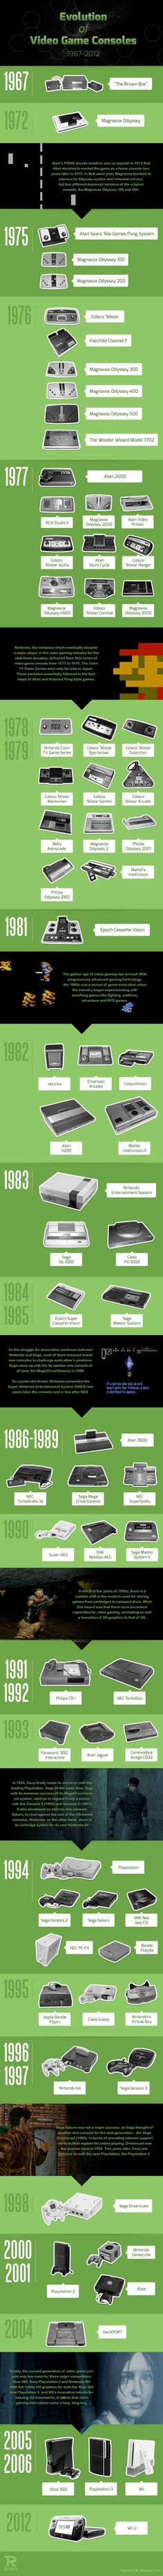 A Visual History of Video Game Consoles - How-To Geek